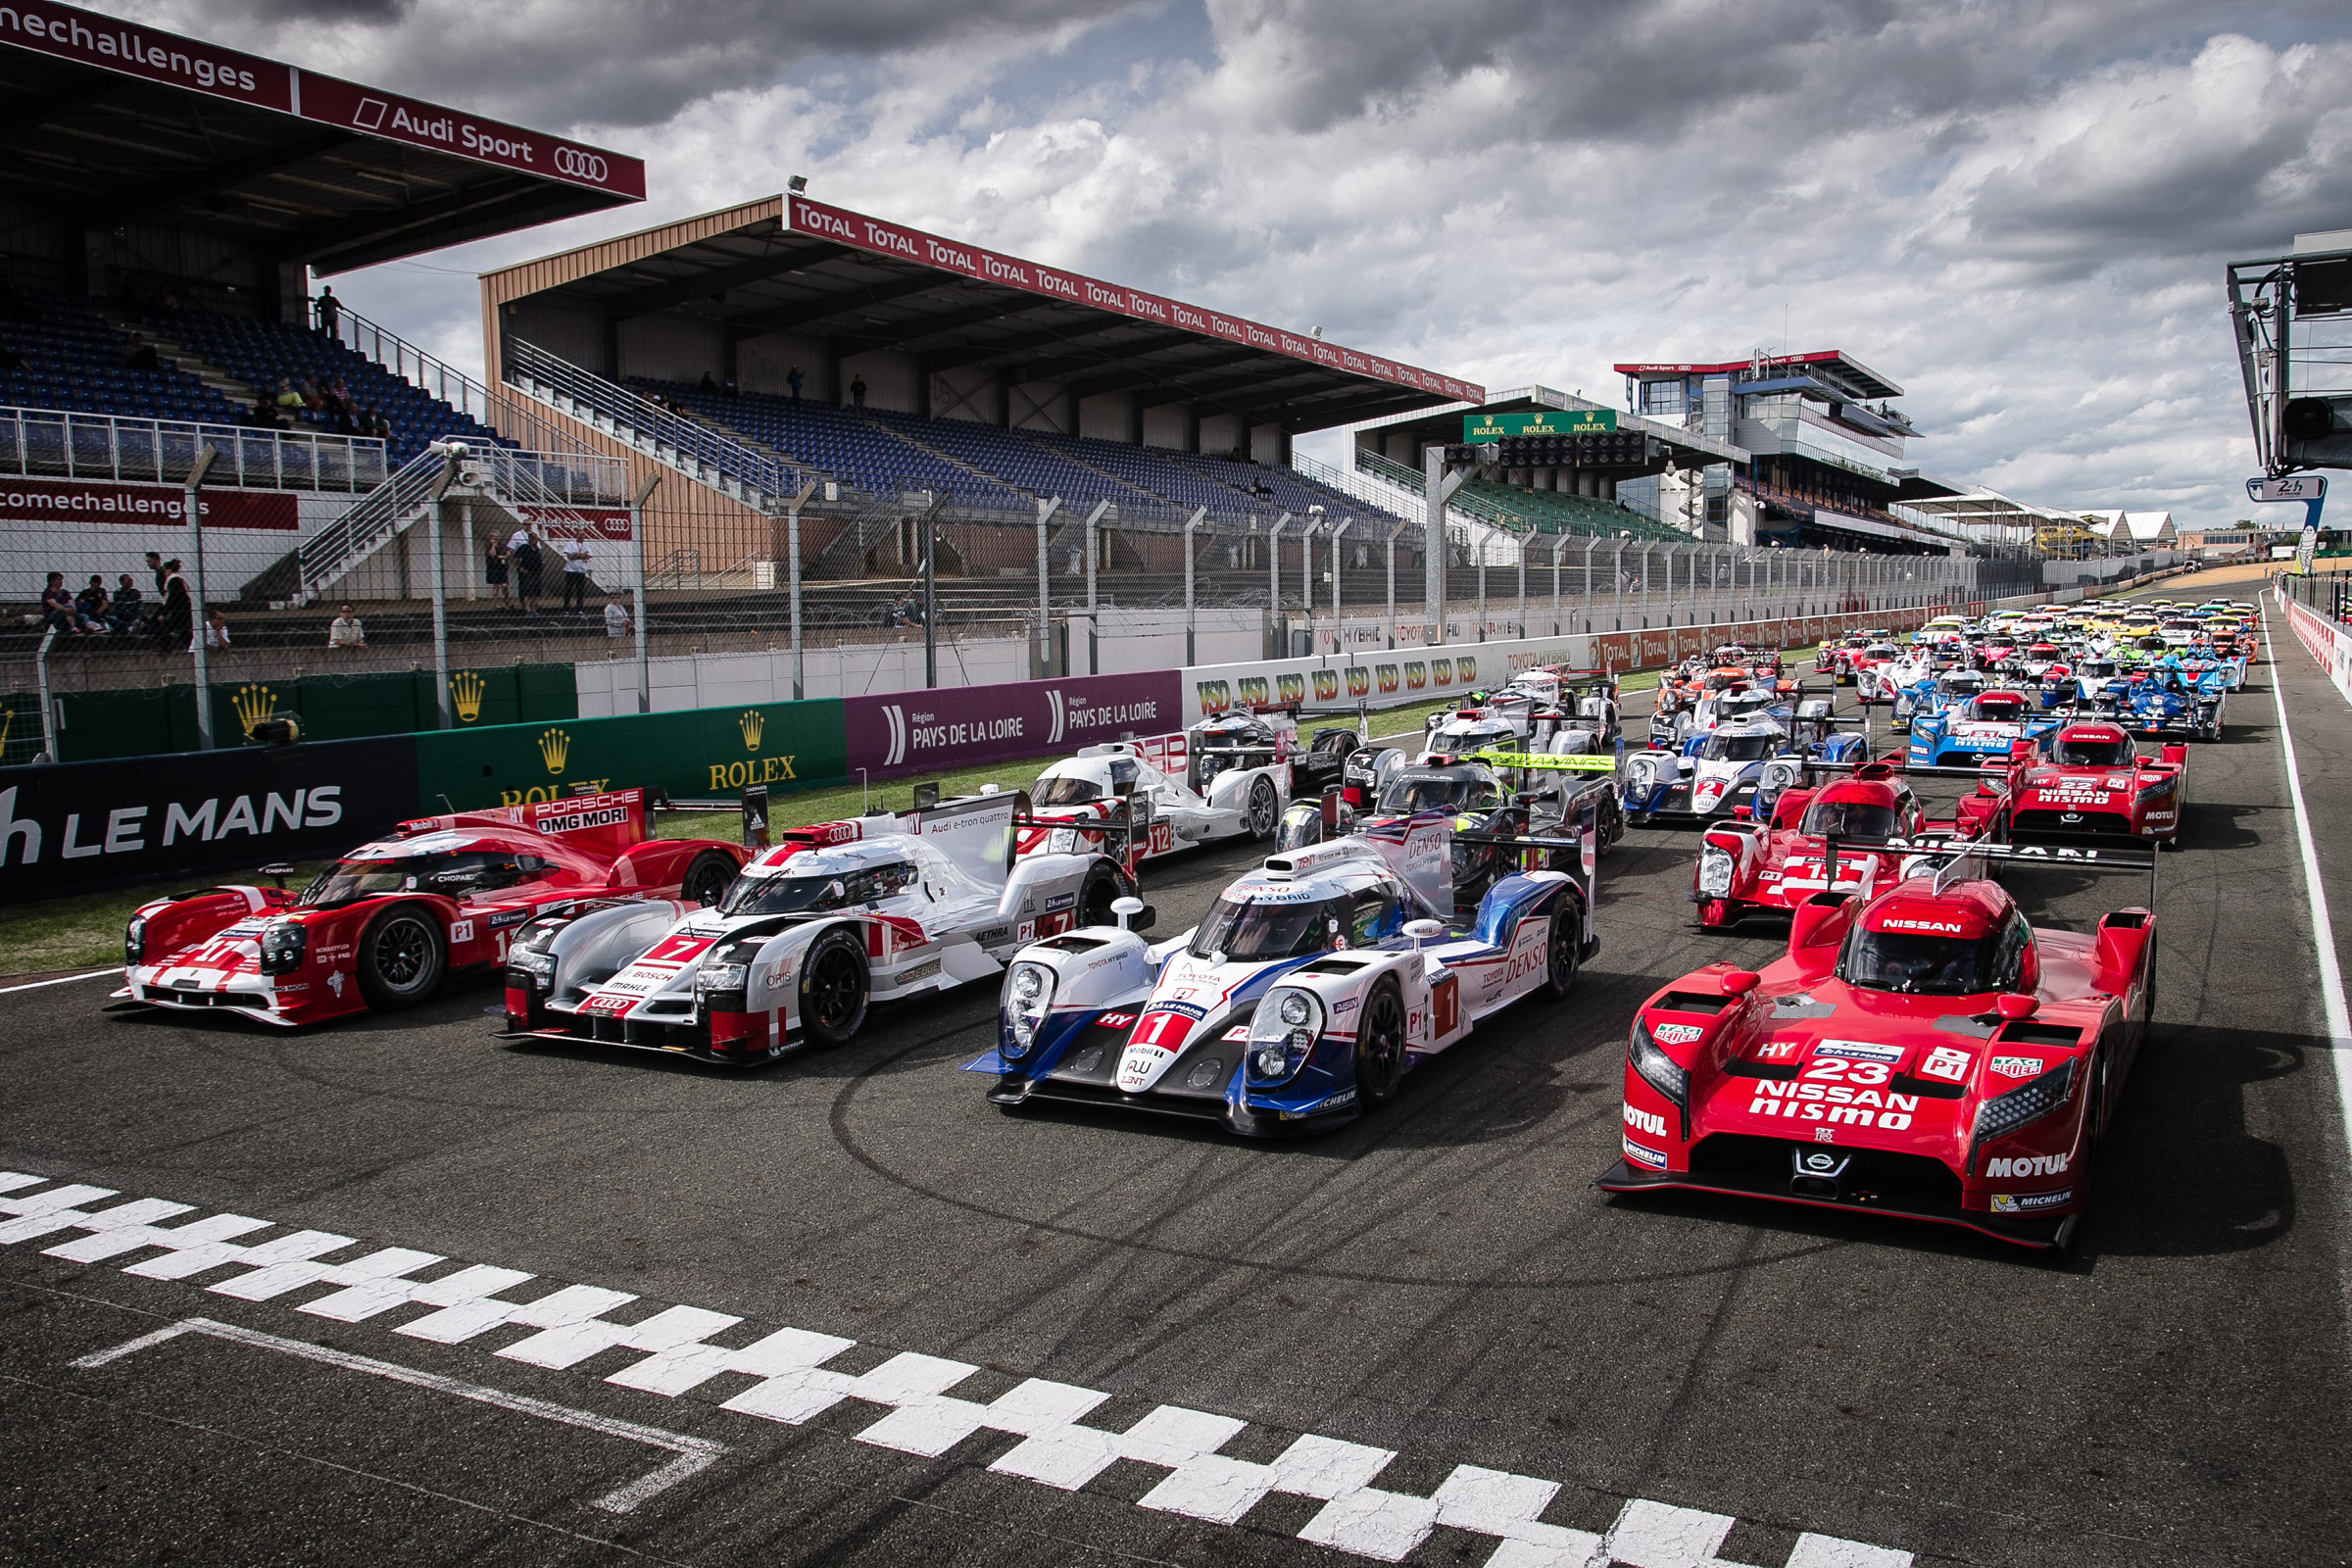 Le Mans 24 Hours 2015: your guide to this year's race | Auto Express